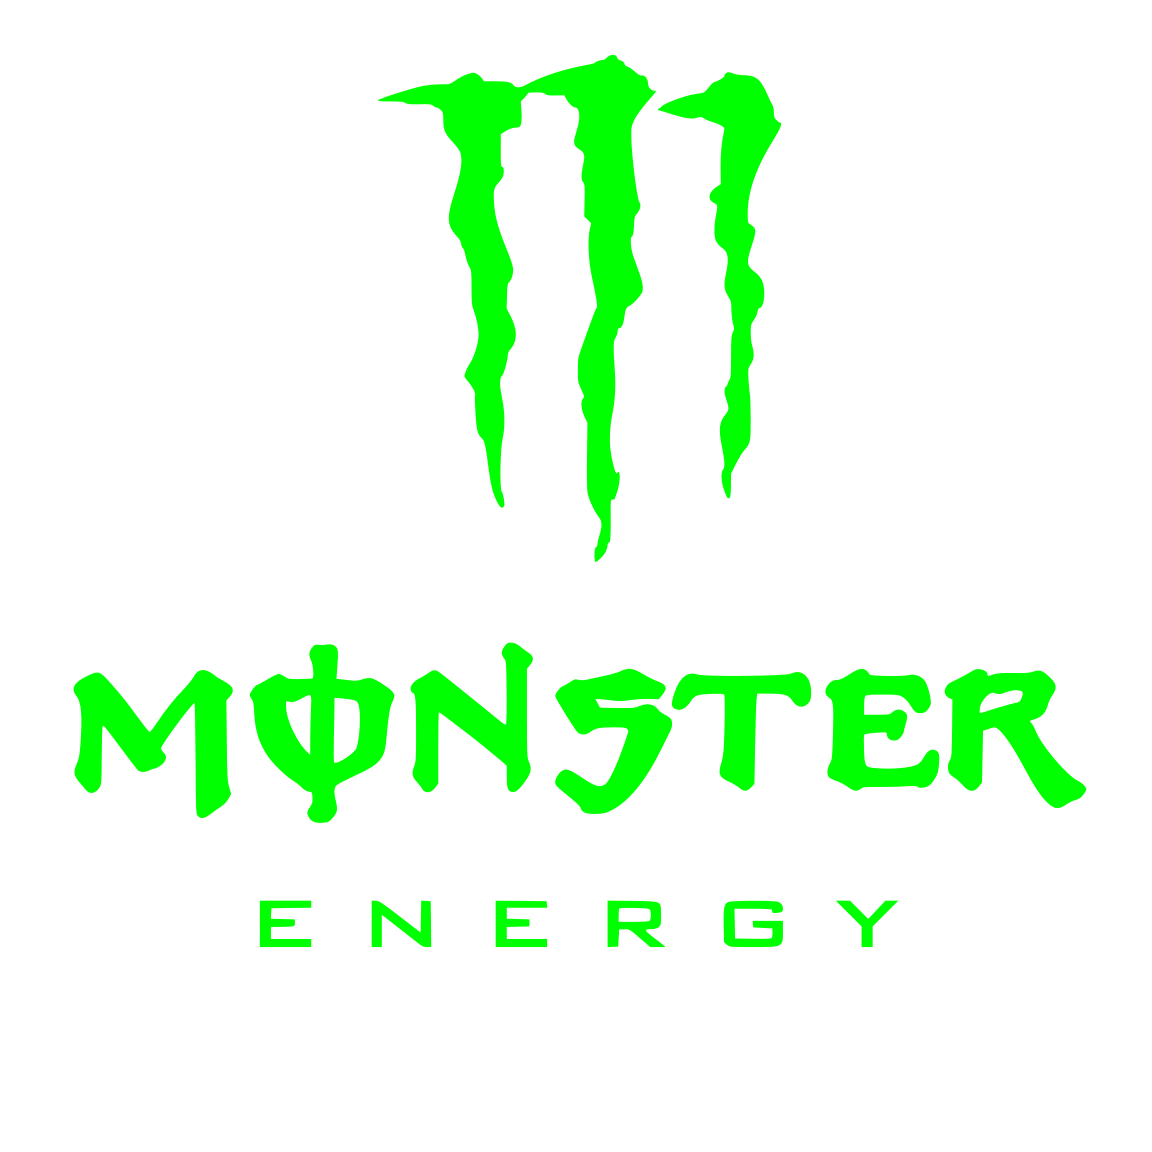 How to draw monster energy logo monster logo step 5 celtic wiccan how to draw monster energy logo monster logo step 5 celtic wiccan norse stuff pinterest monsters logos and car paint jobs buycottarizona Choice Image